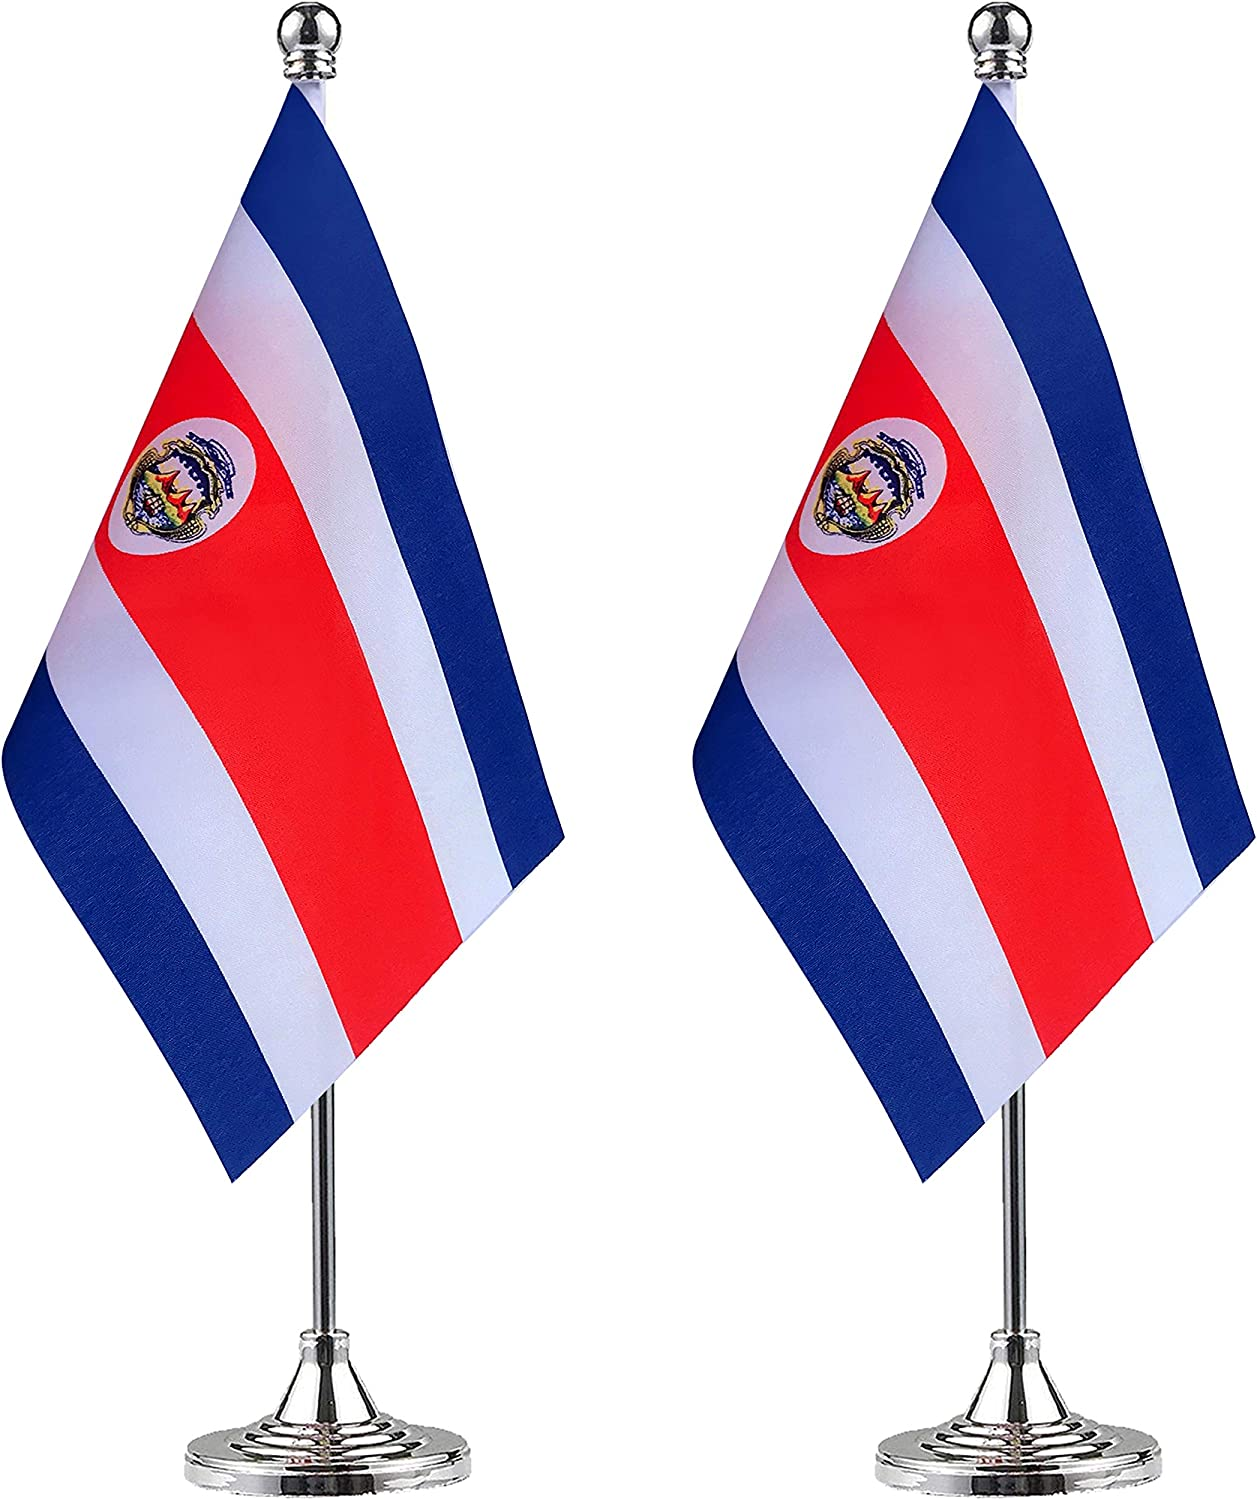 WEITBF Costa Rica Desk Flag Small Mini Costa Rican Office Table Flag with Stand Base,Costa Rican Themed Party Decorations Celebration Event,2 Pack